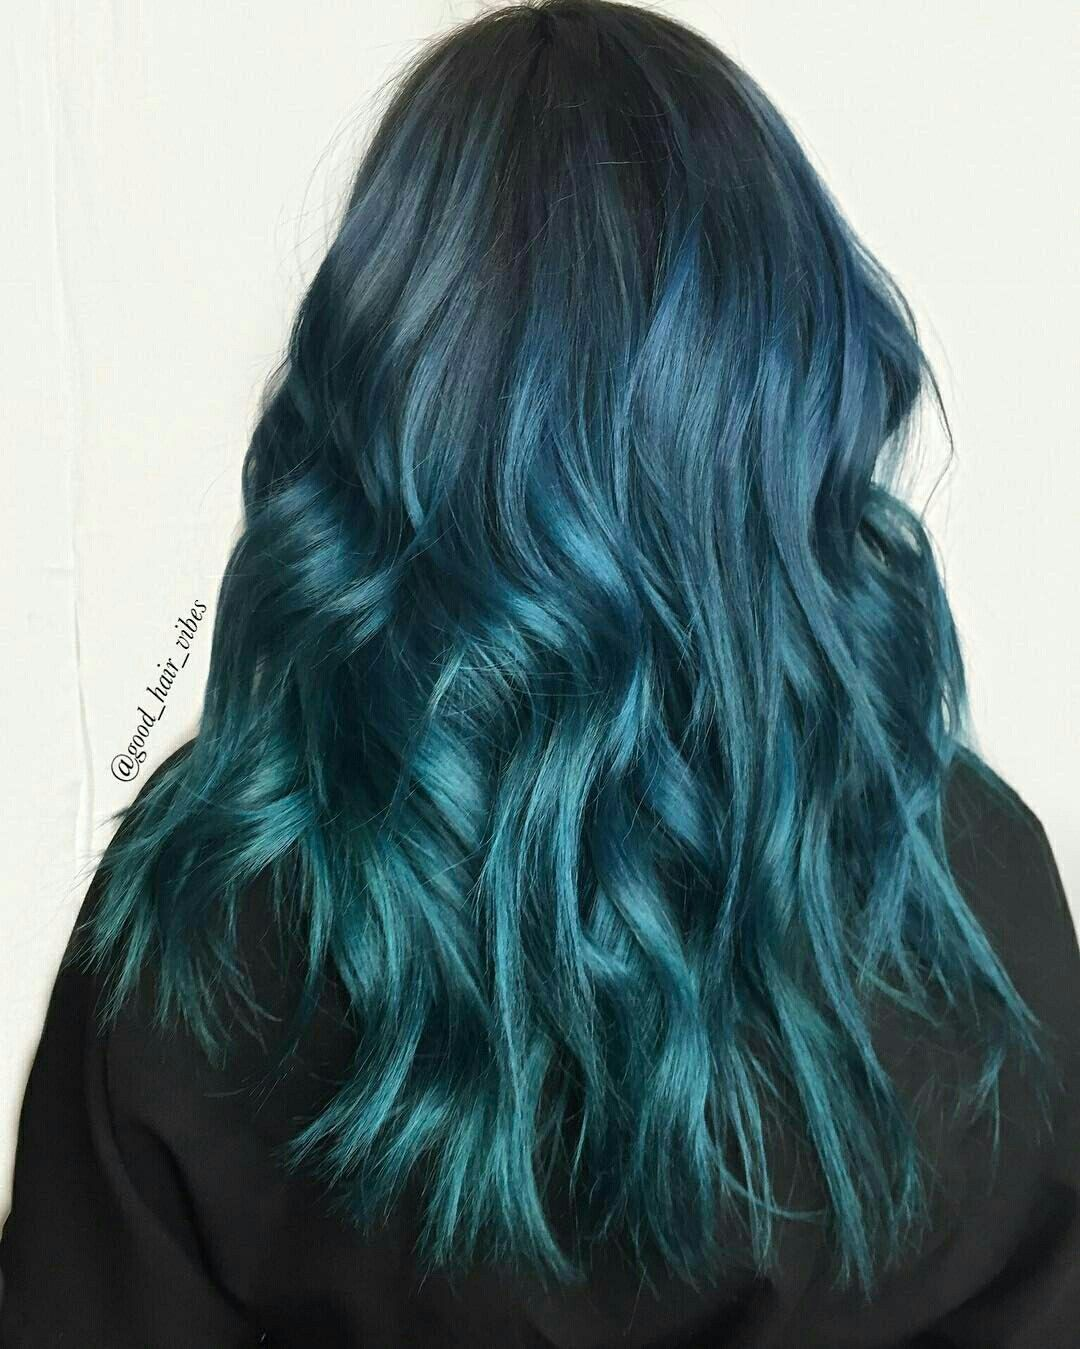 Pin By Nonie Chang On Dyed Hair Pinterest Dyed Hair Hair And